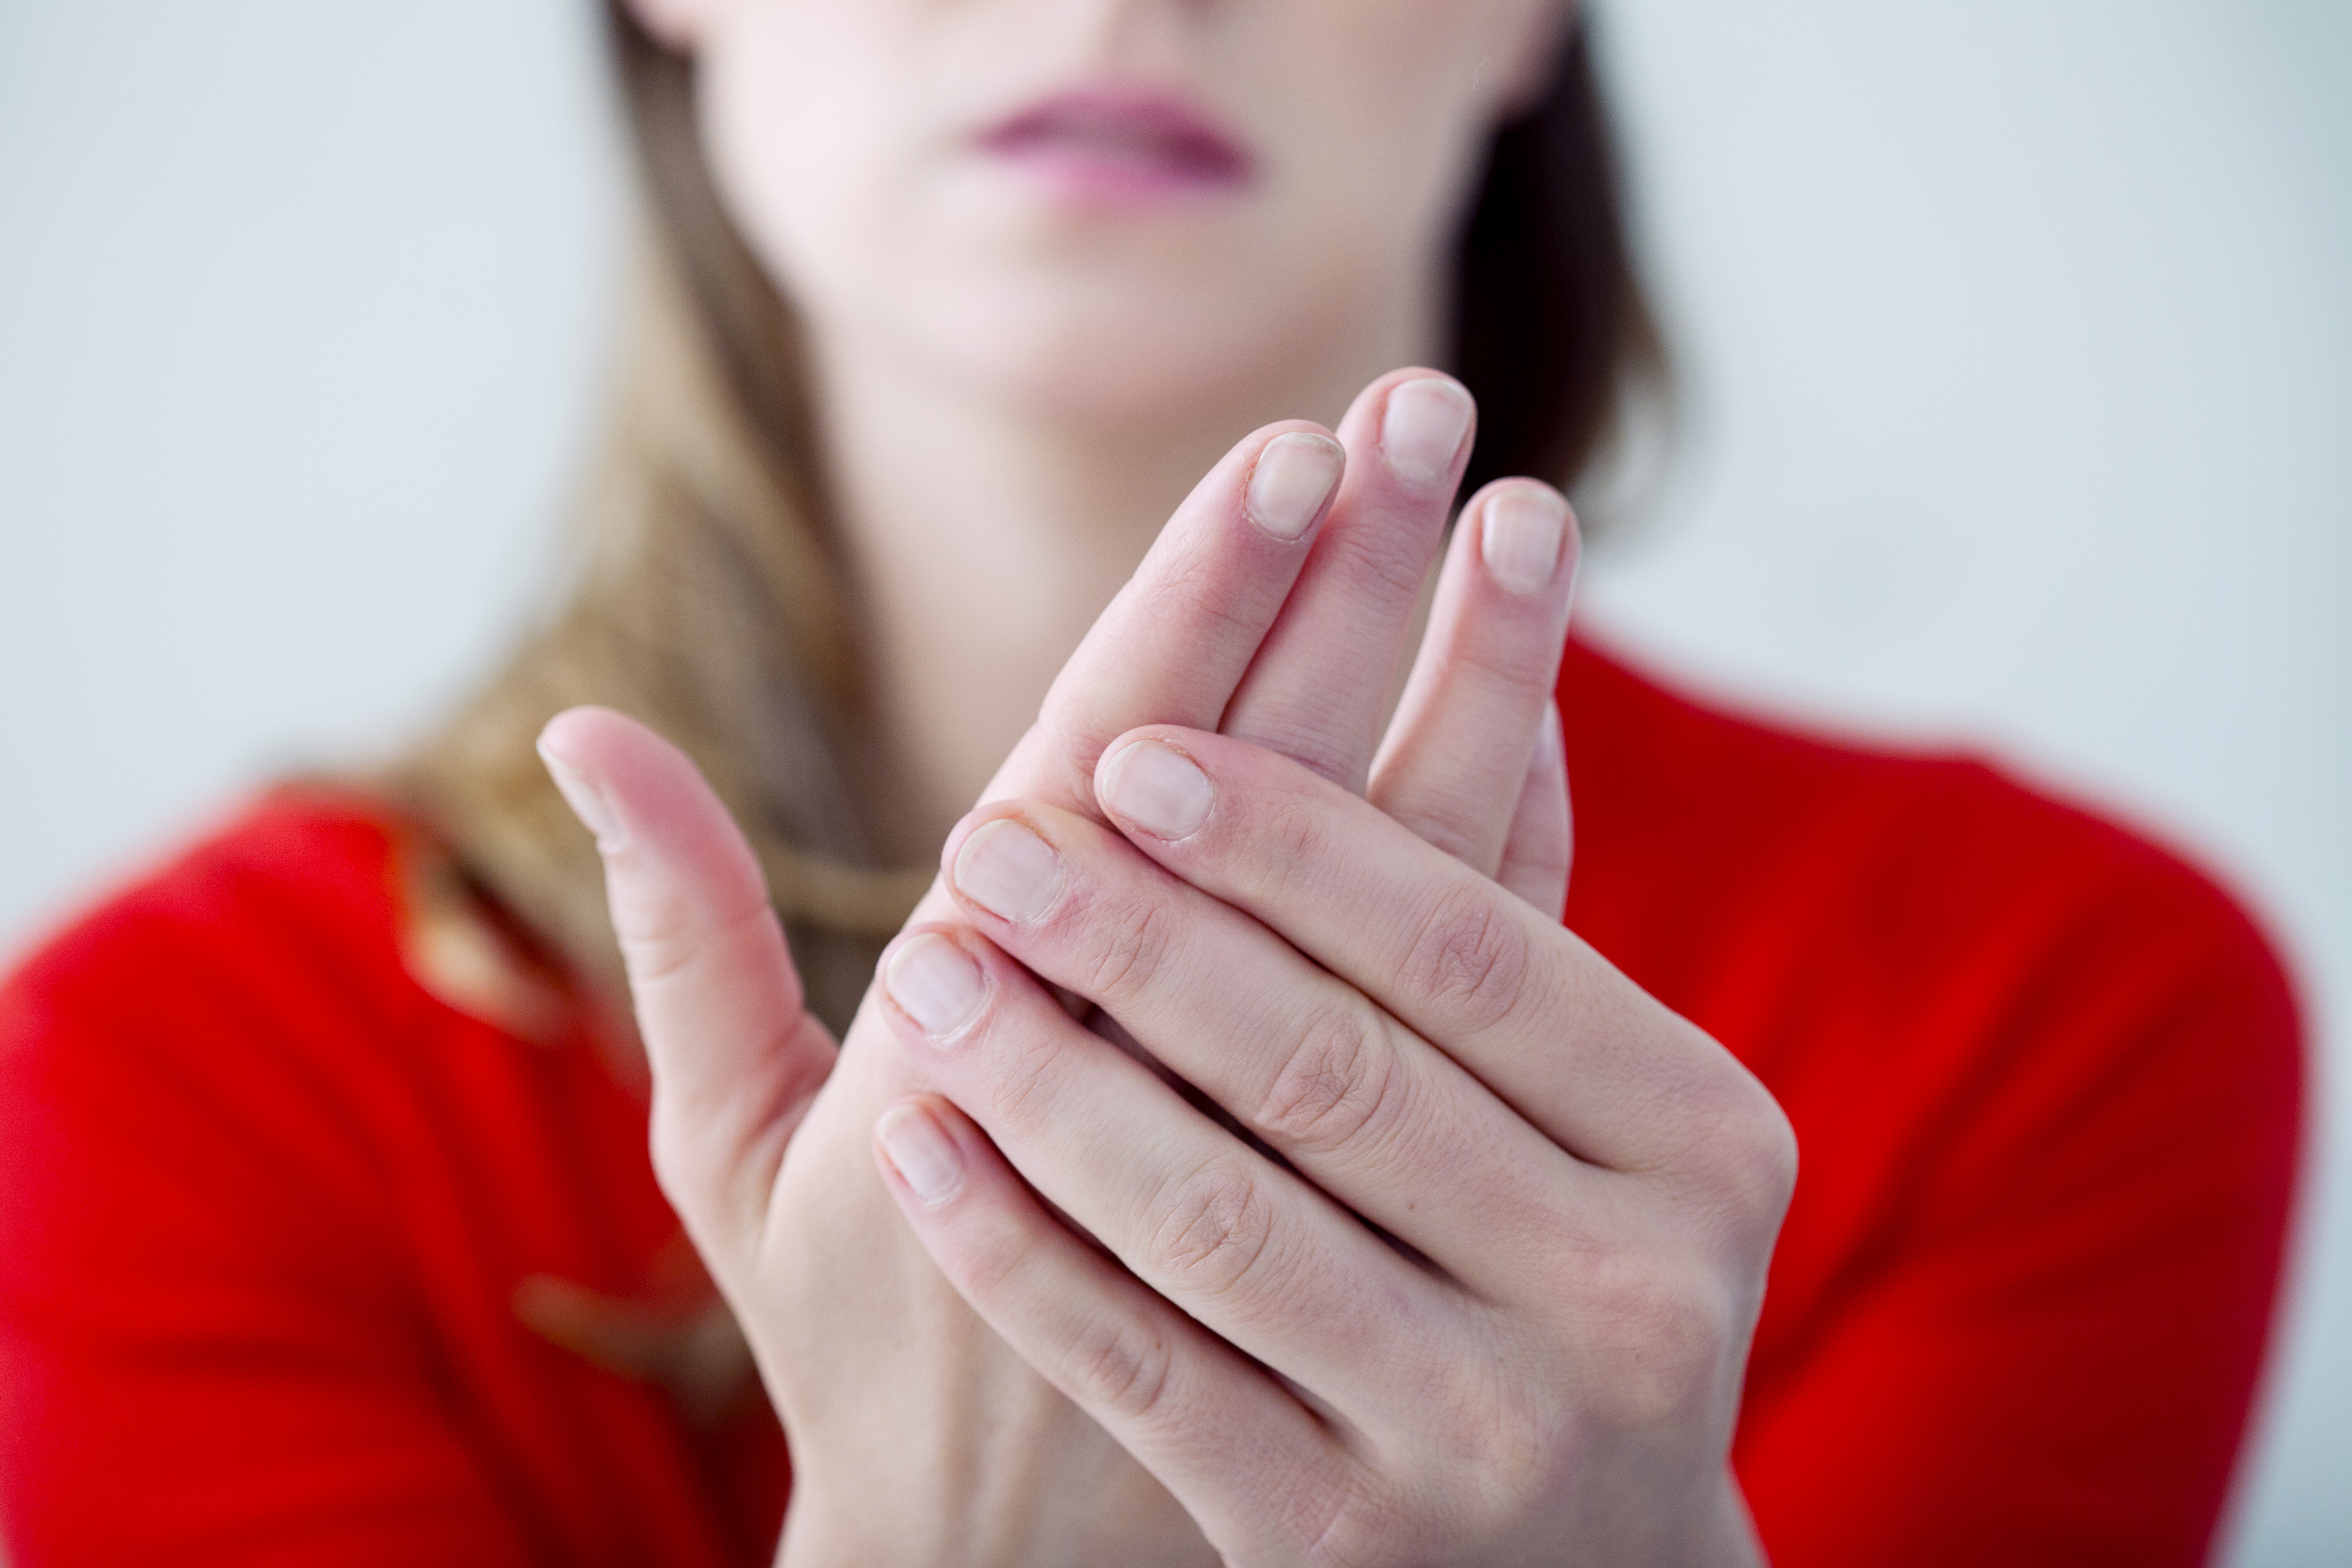 Iloprost Found To Mitigate Raynaud's Syndrome Symptoms and Heal Associated Digital Ulcers